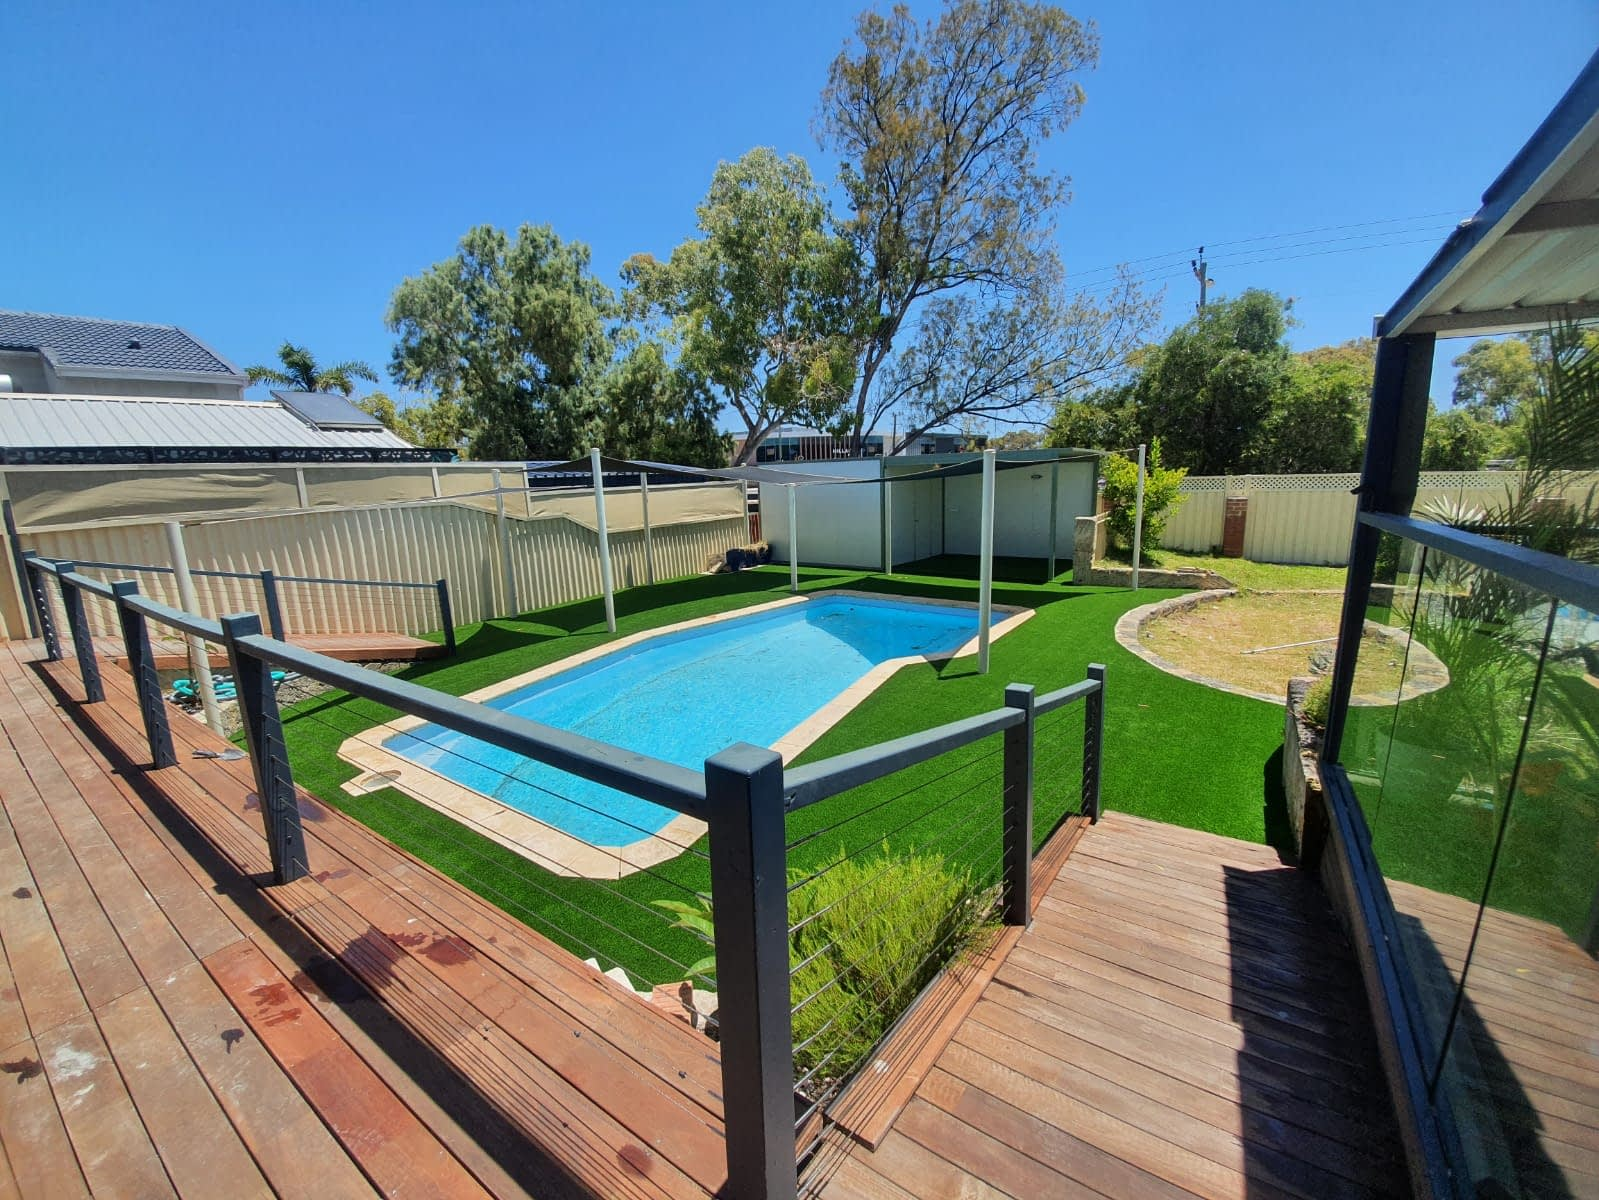 PAG - artificial grass installation around a pool 2